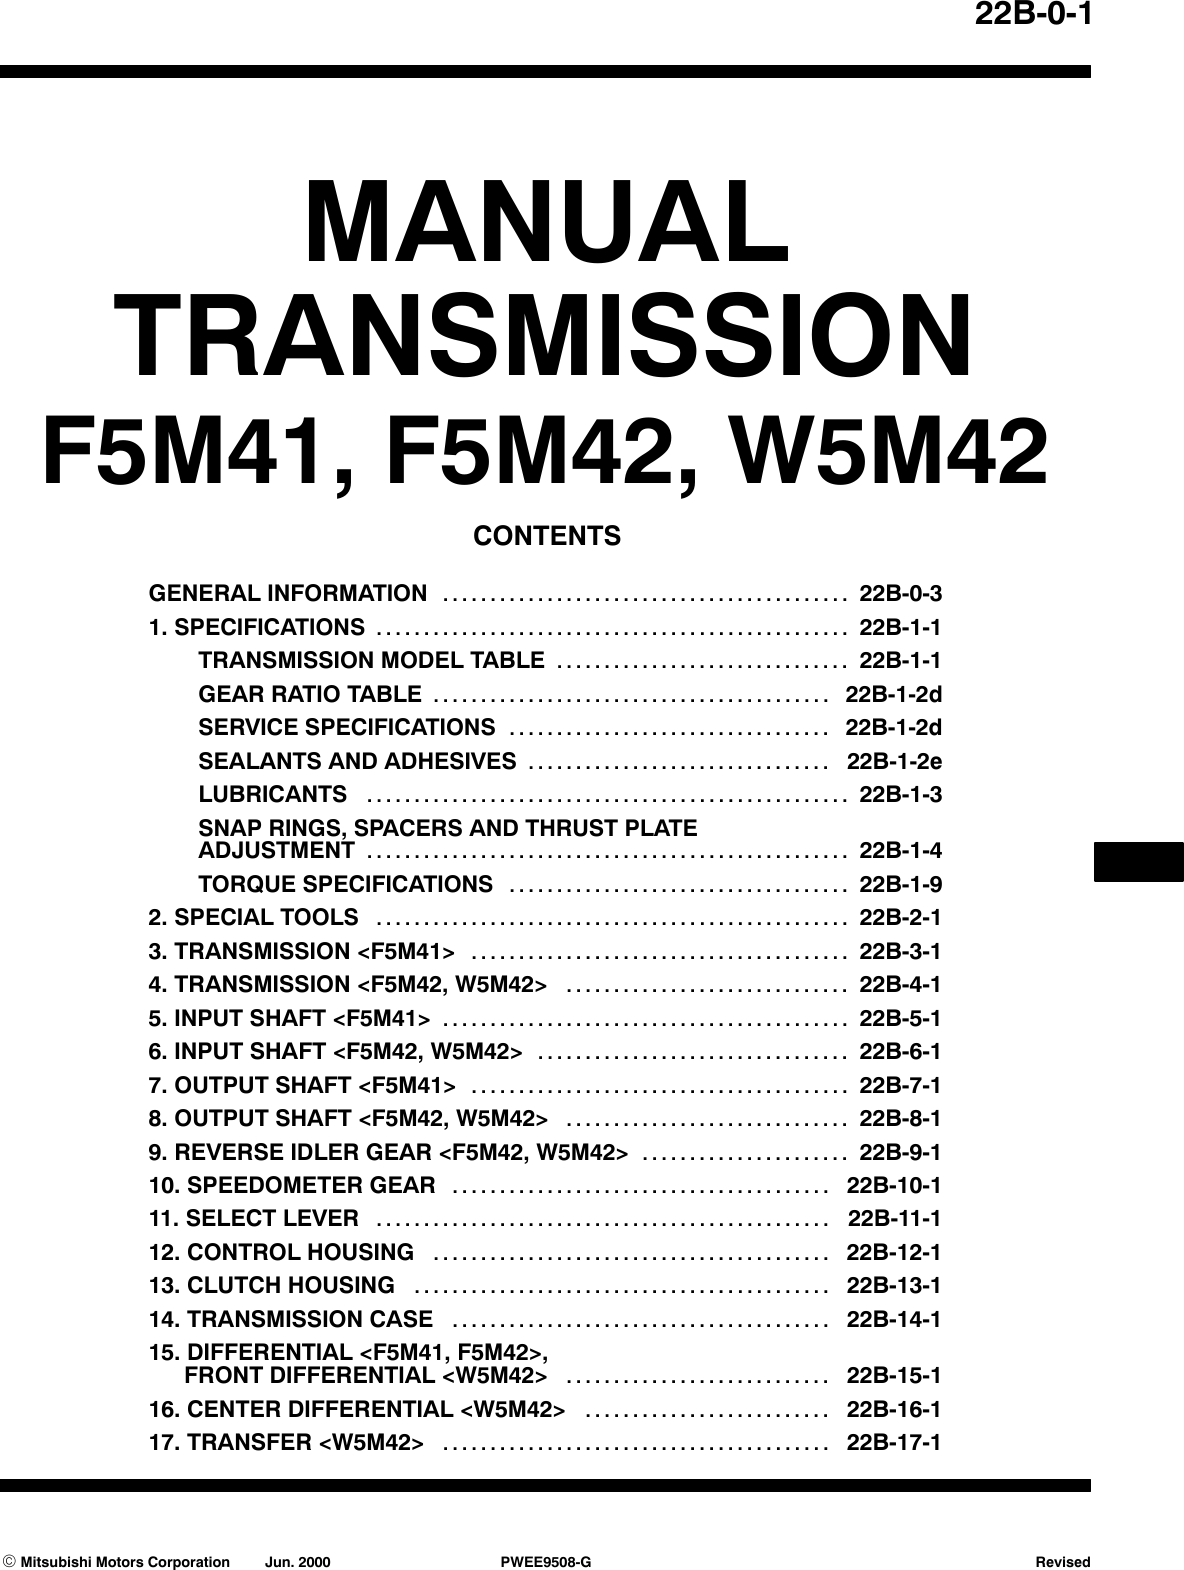 GENERAL INFORMATION GEAR RATIO TABLE SERVICE SPECIFICATIONS M1222000300146  Transmission model Speedomerter gear ratio Final gear The gear ratio of a  gear ...